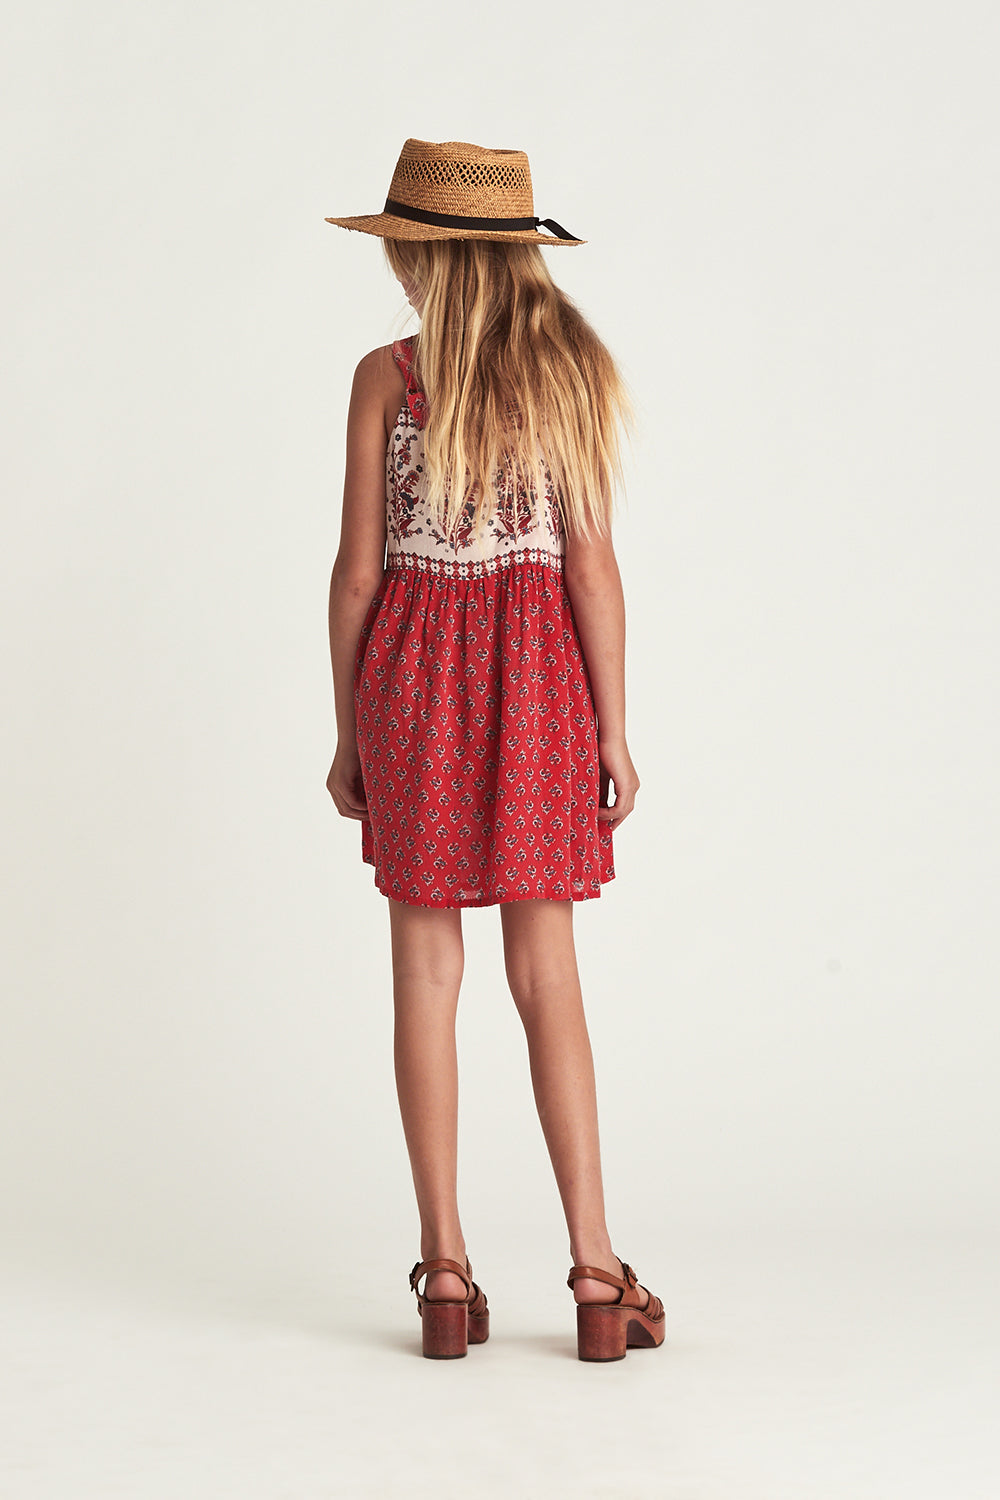 Serafina Littles Dress in Crimson Skies